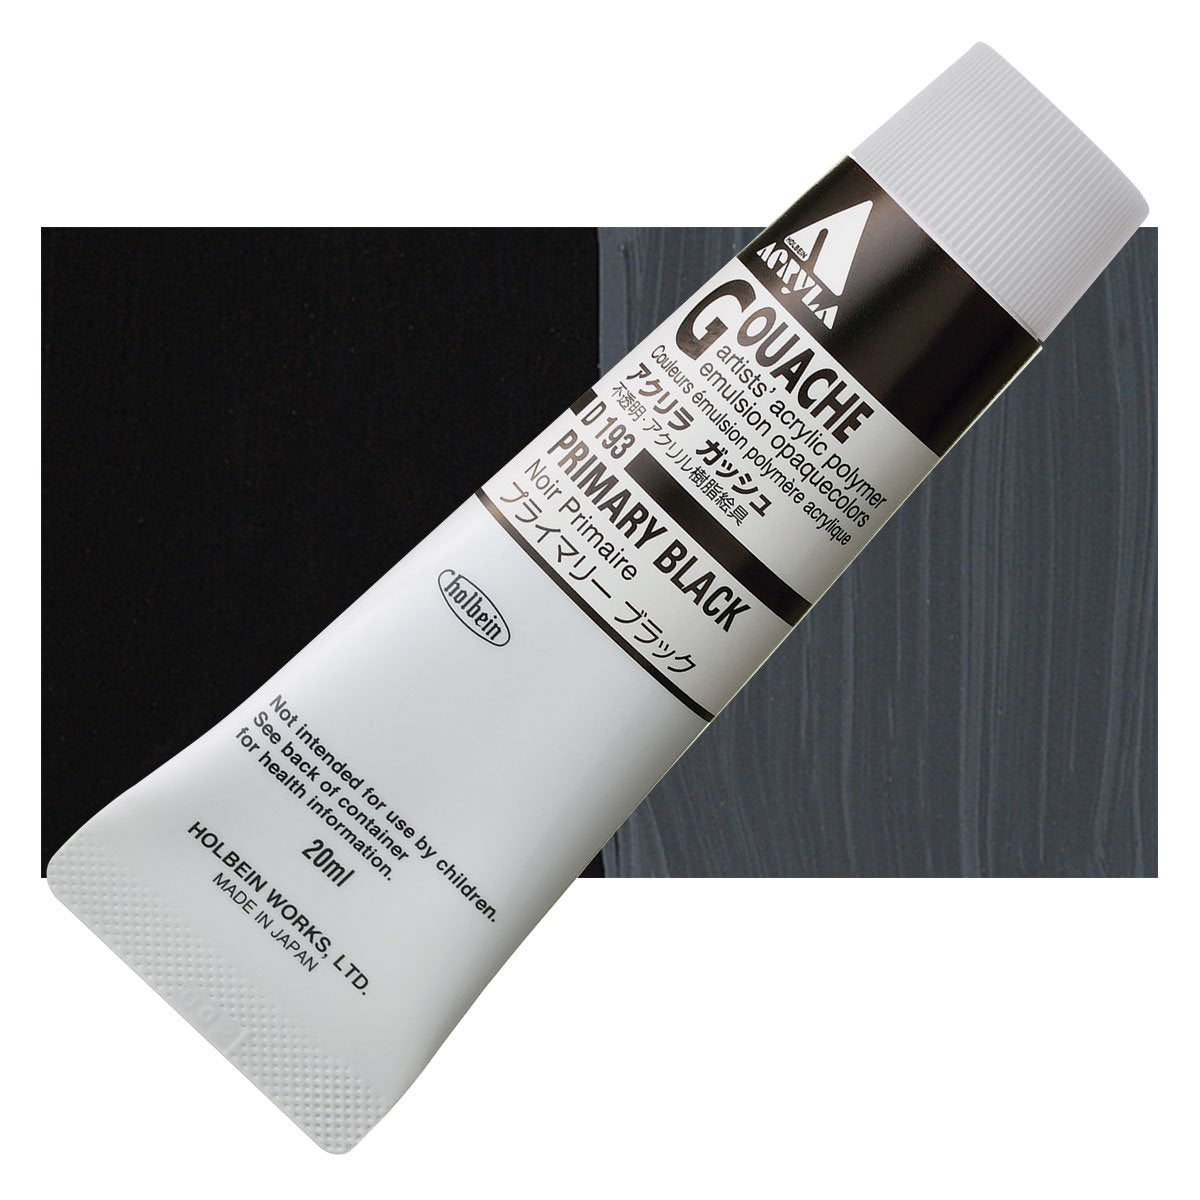 Holbein Acryla Gouache 20ml Tubes - Primary Black by Holbein - K. A. Artist Shop